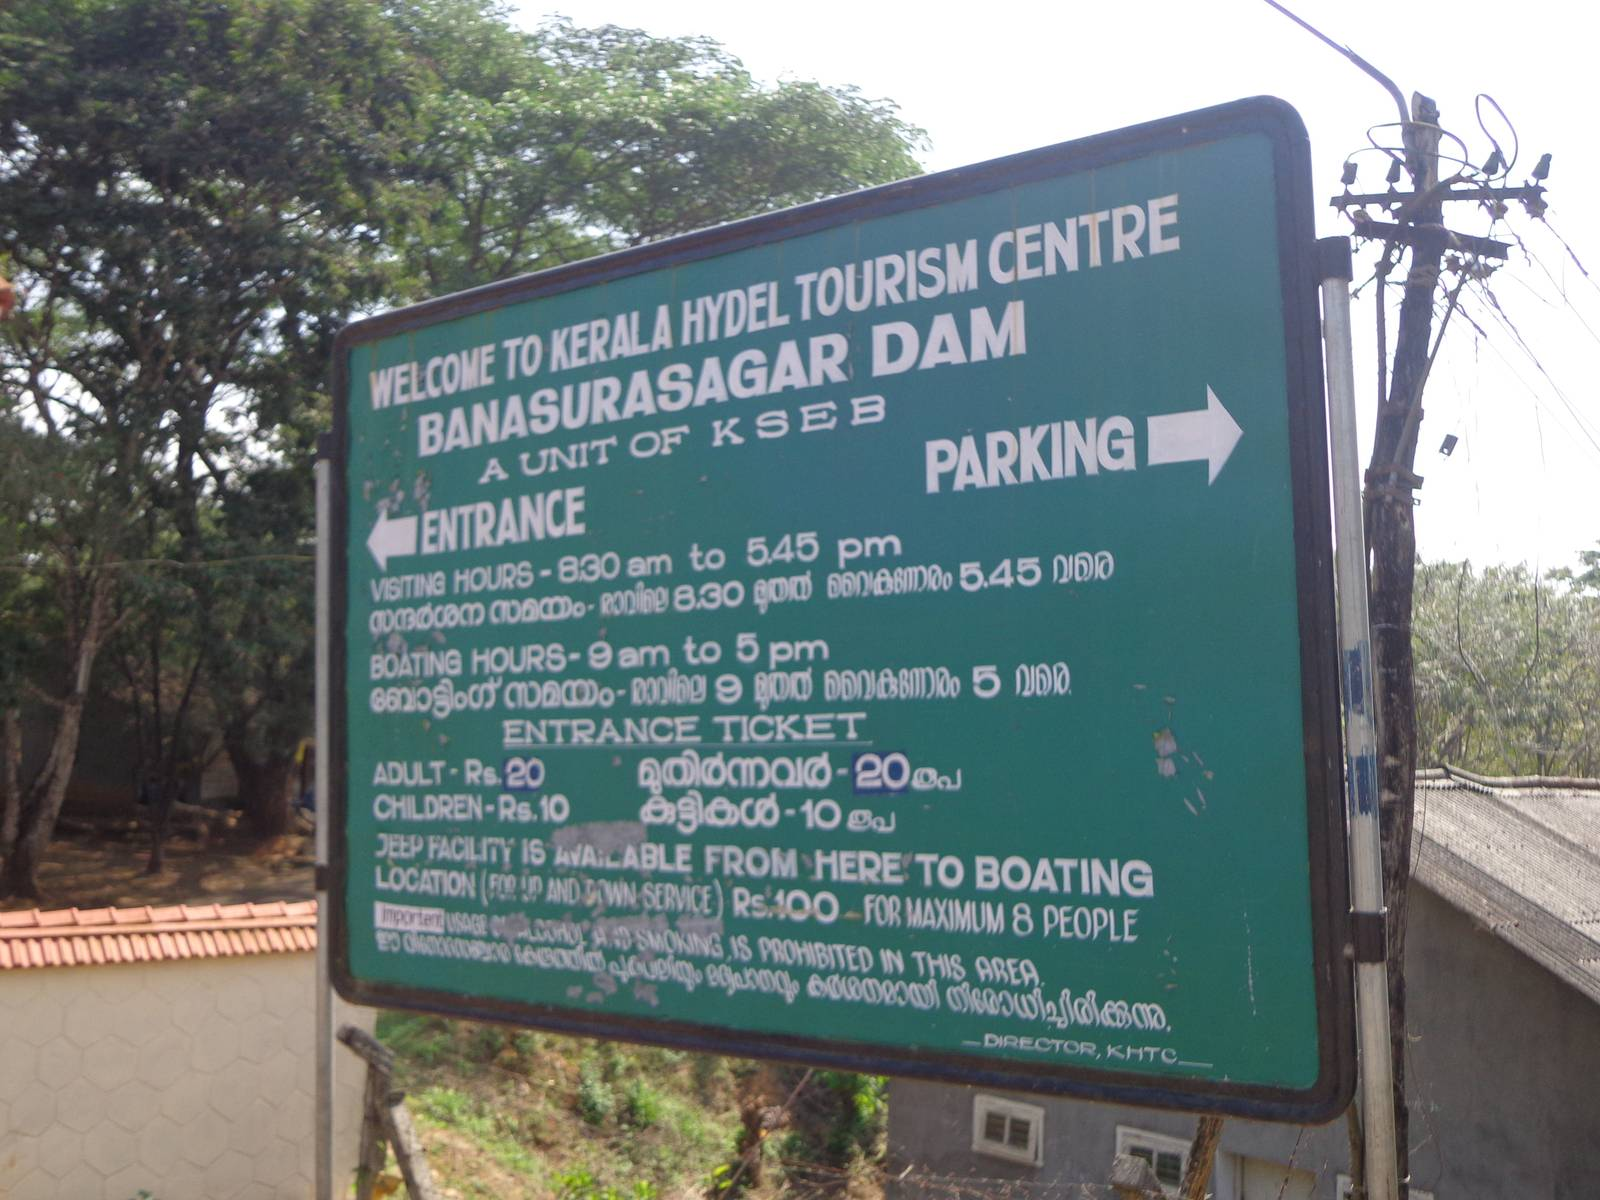 Kerala has done a lot to promote tourism and earn revenue in the process. Almost all spots have info boards like this.